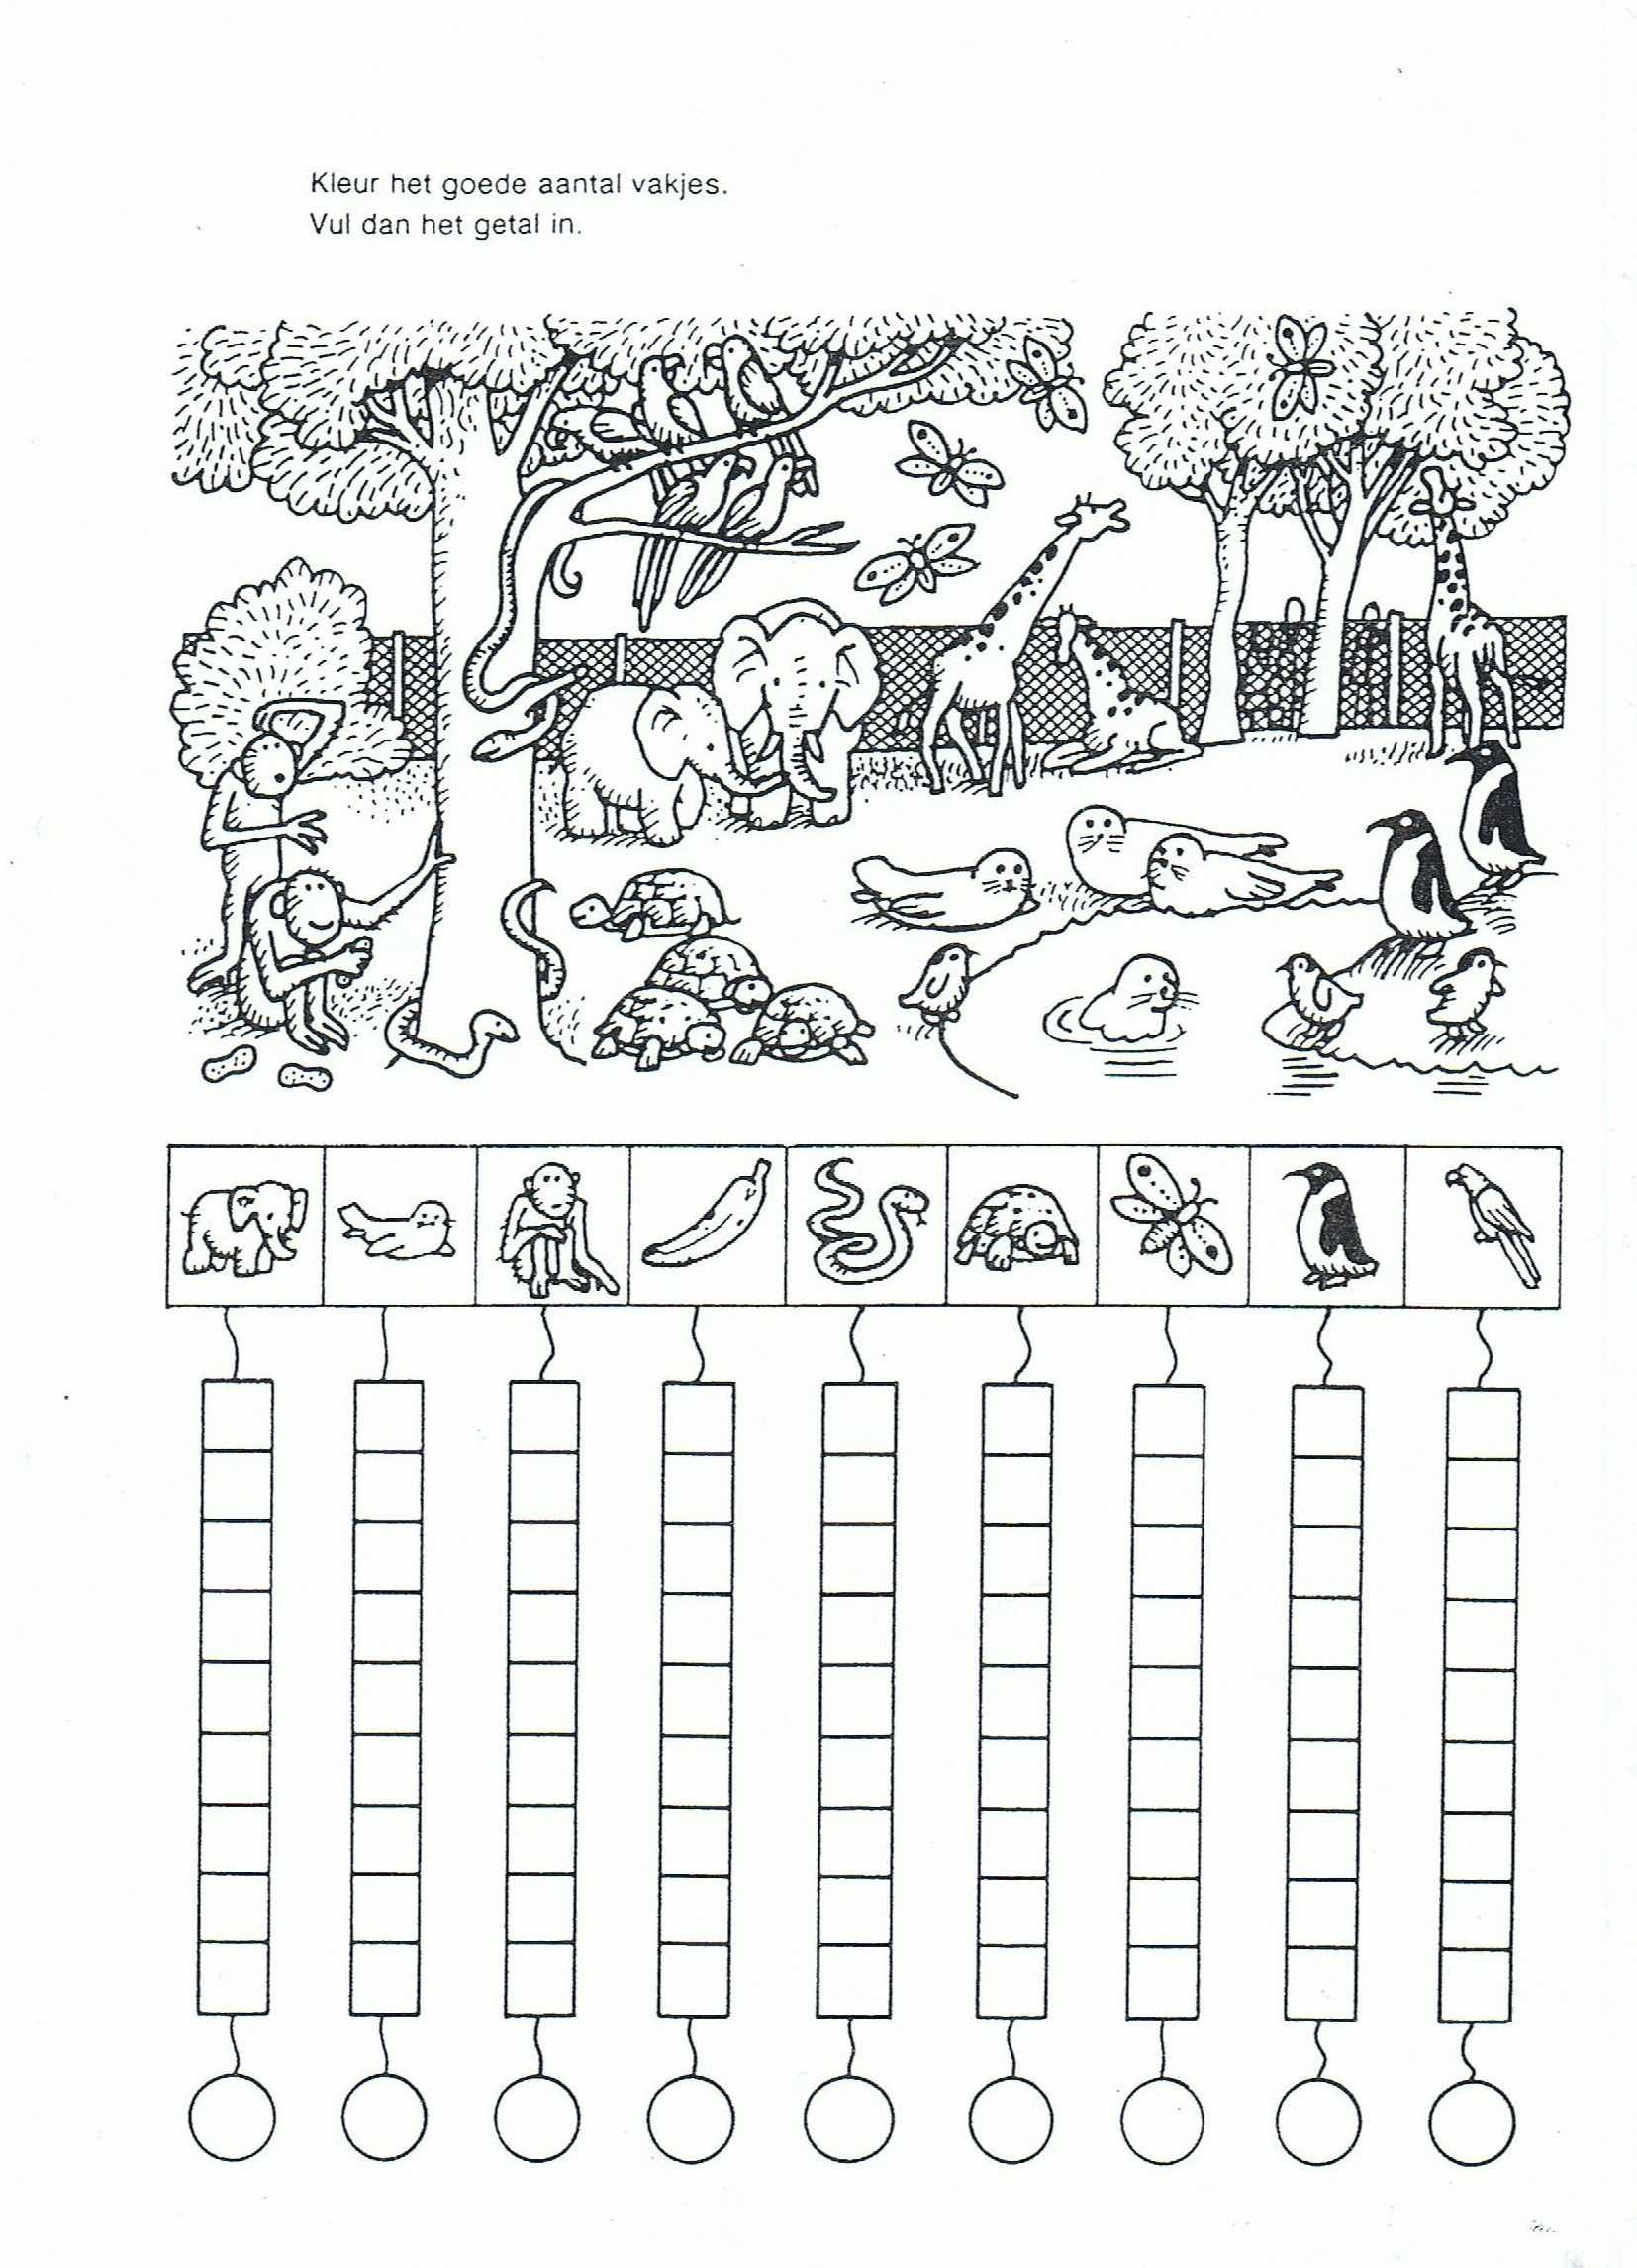 Food Chains and Webs Worksheet as Well as Web Worksheets Printable